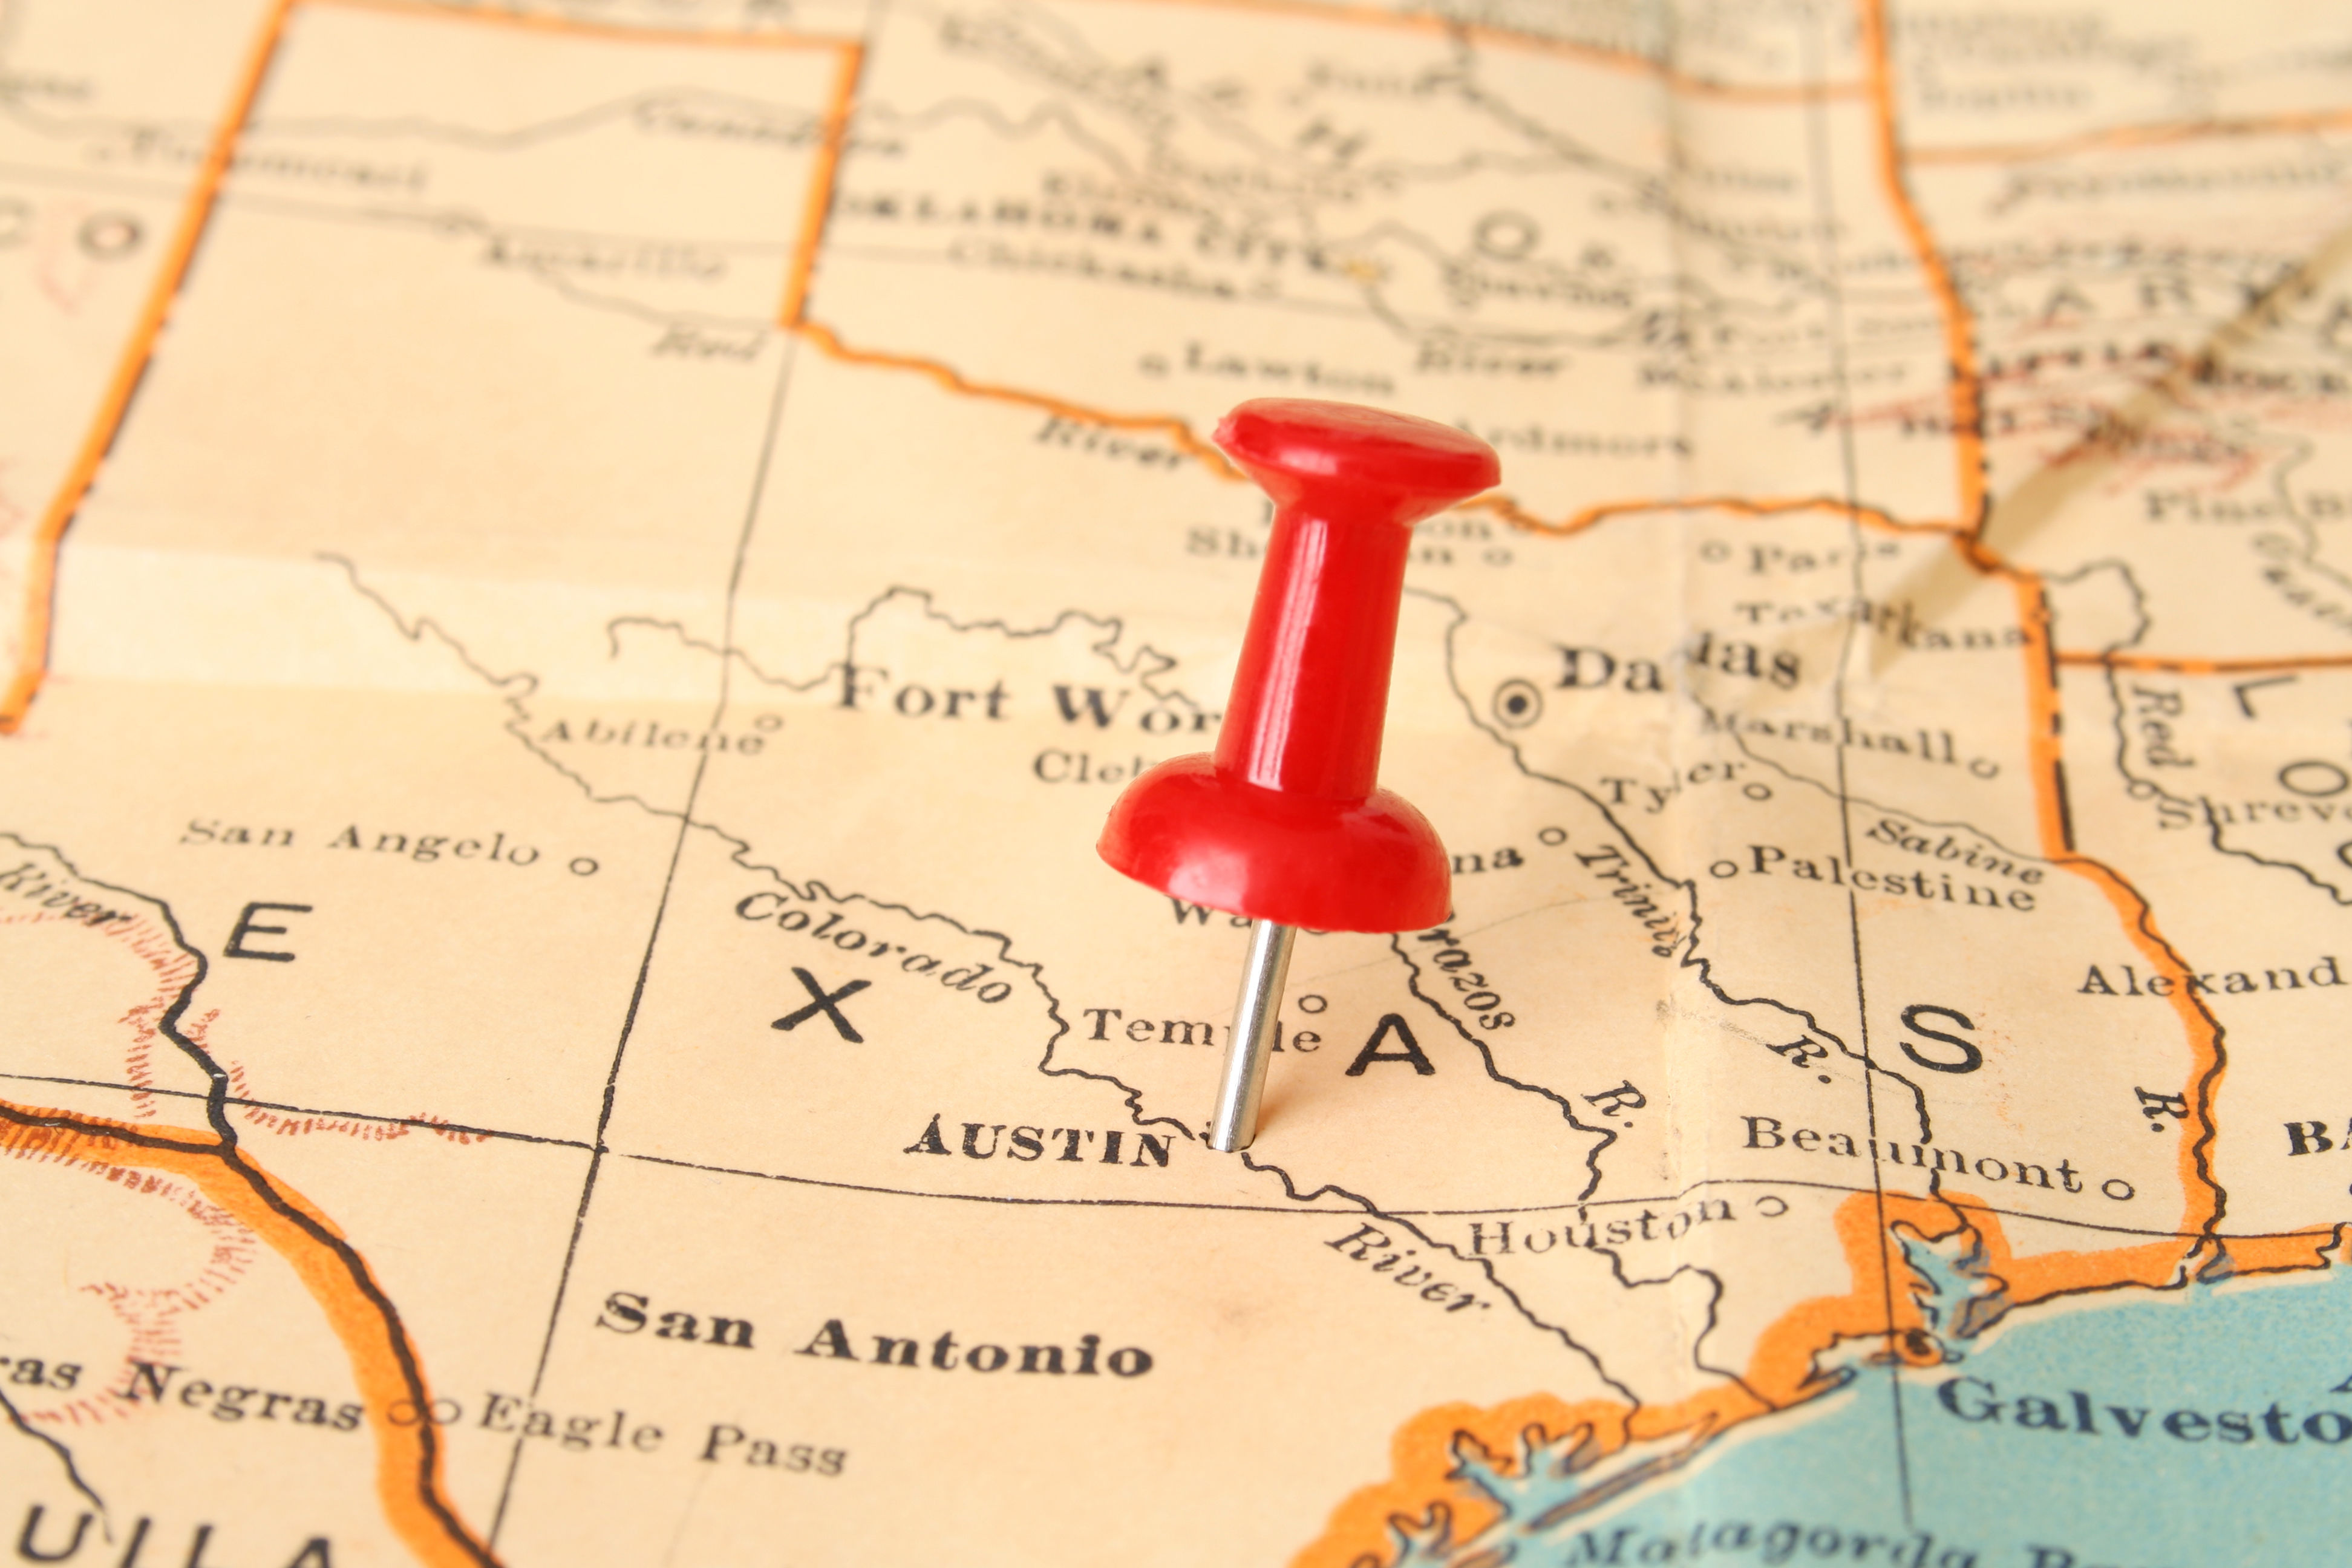 The History of the Weirdest Texas Town Names and How to Pronounce Them